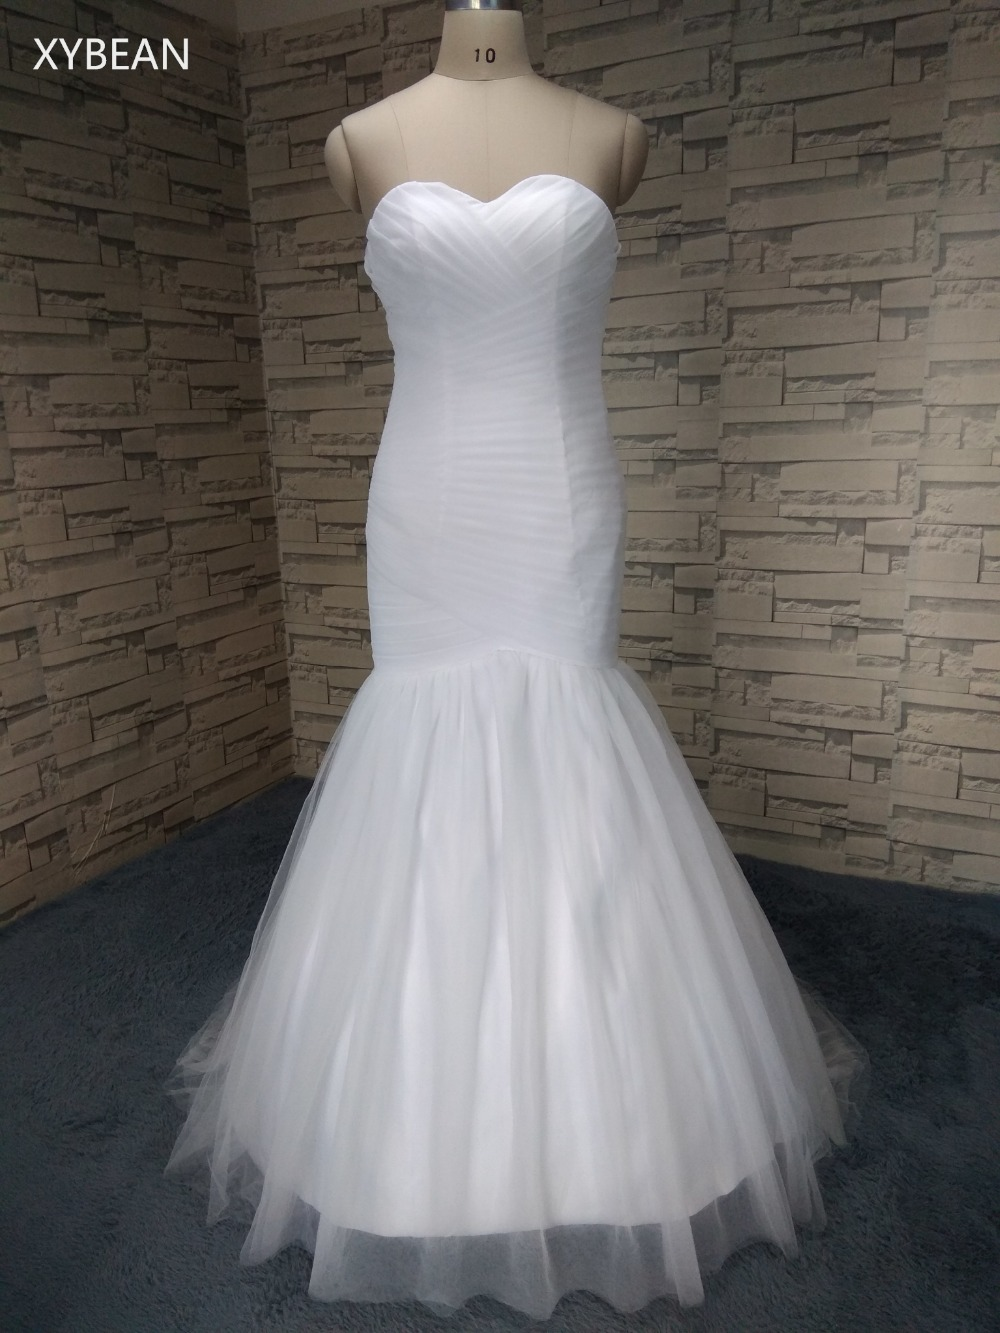 Cheap Price ! Good Quality Free Shipping 2015 New Arrival Mermaid Sweetheart White / Ivory Wedding Dresses FS1136